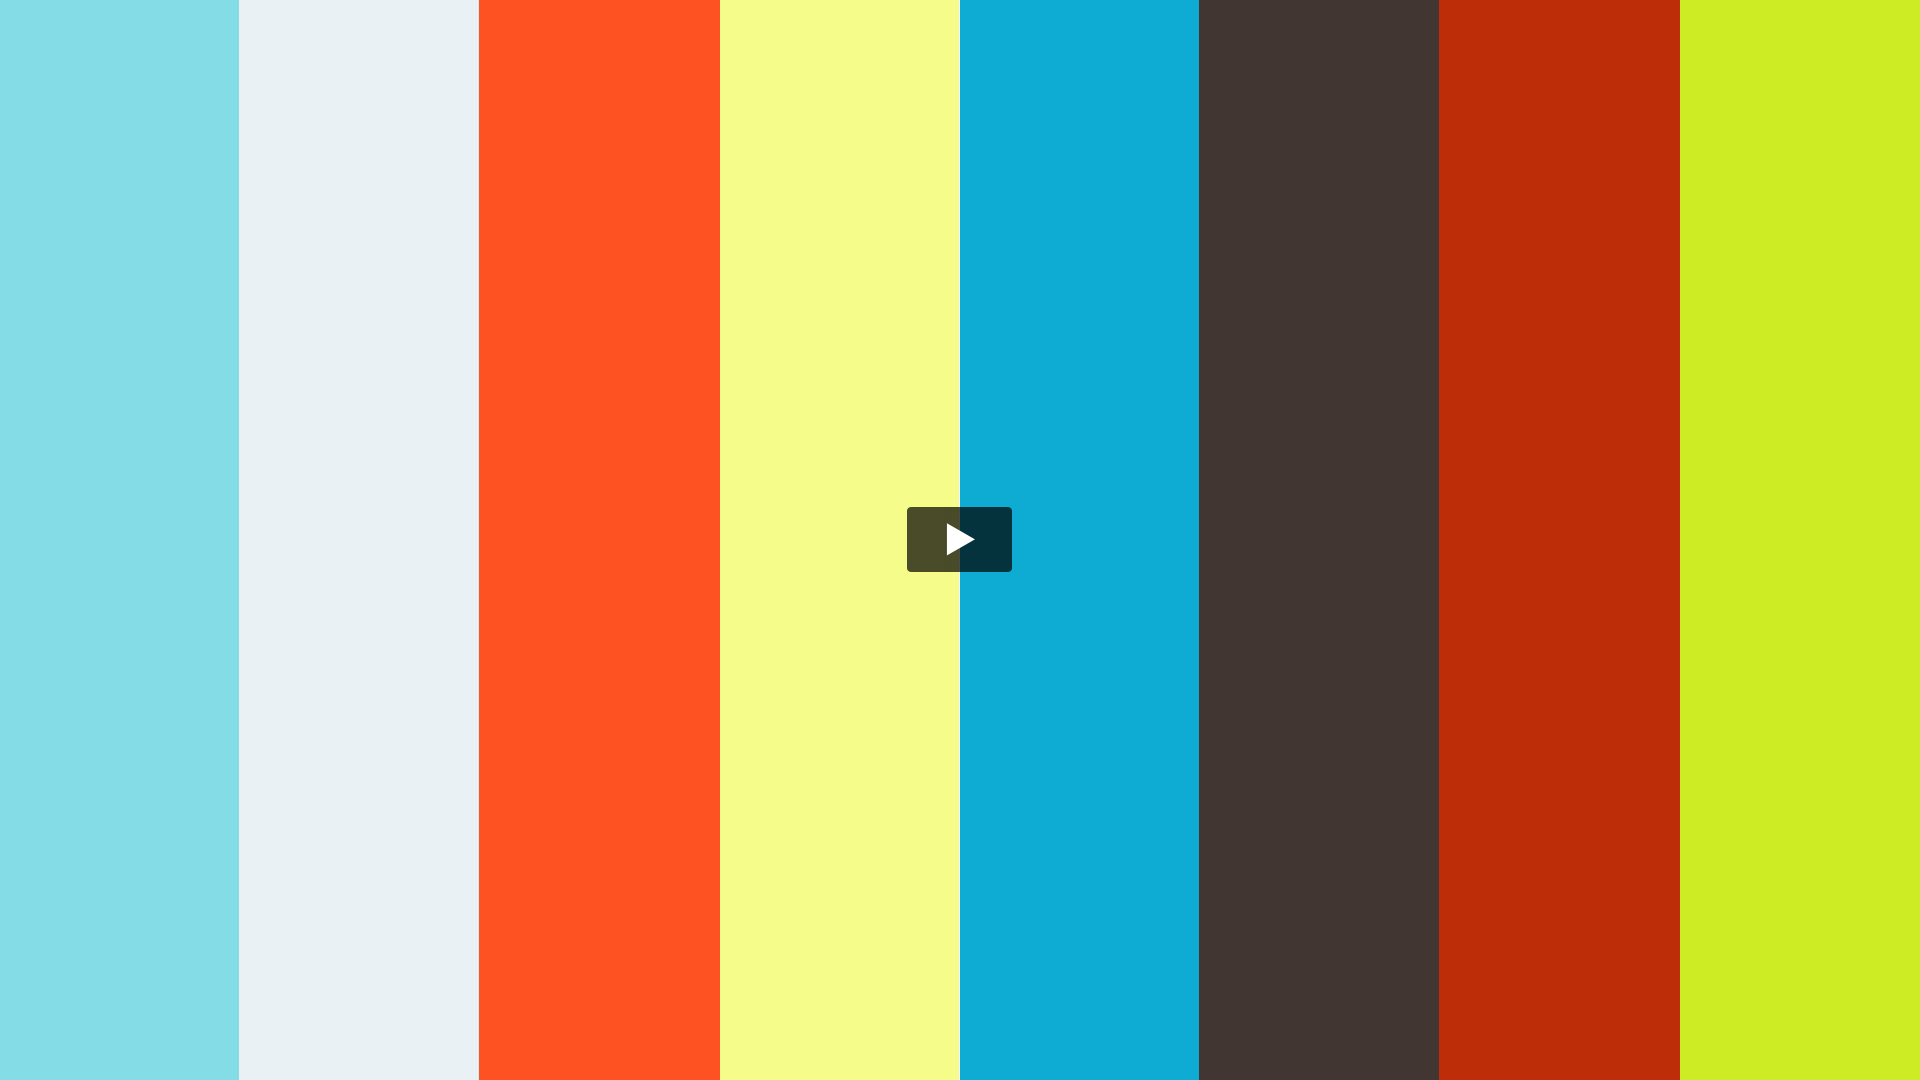 FROM THE ROAD - Aquabumps trip to The Great Ocean Road presented by Telstra